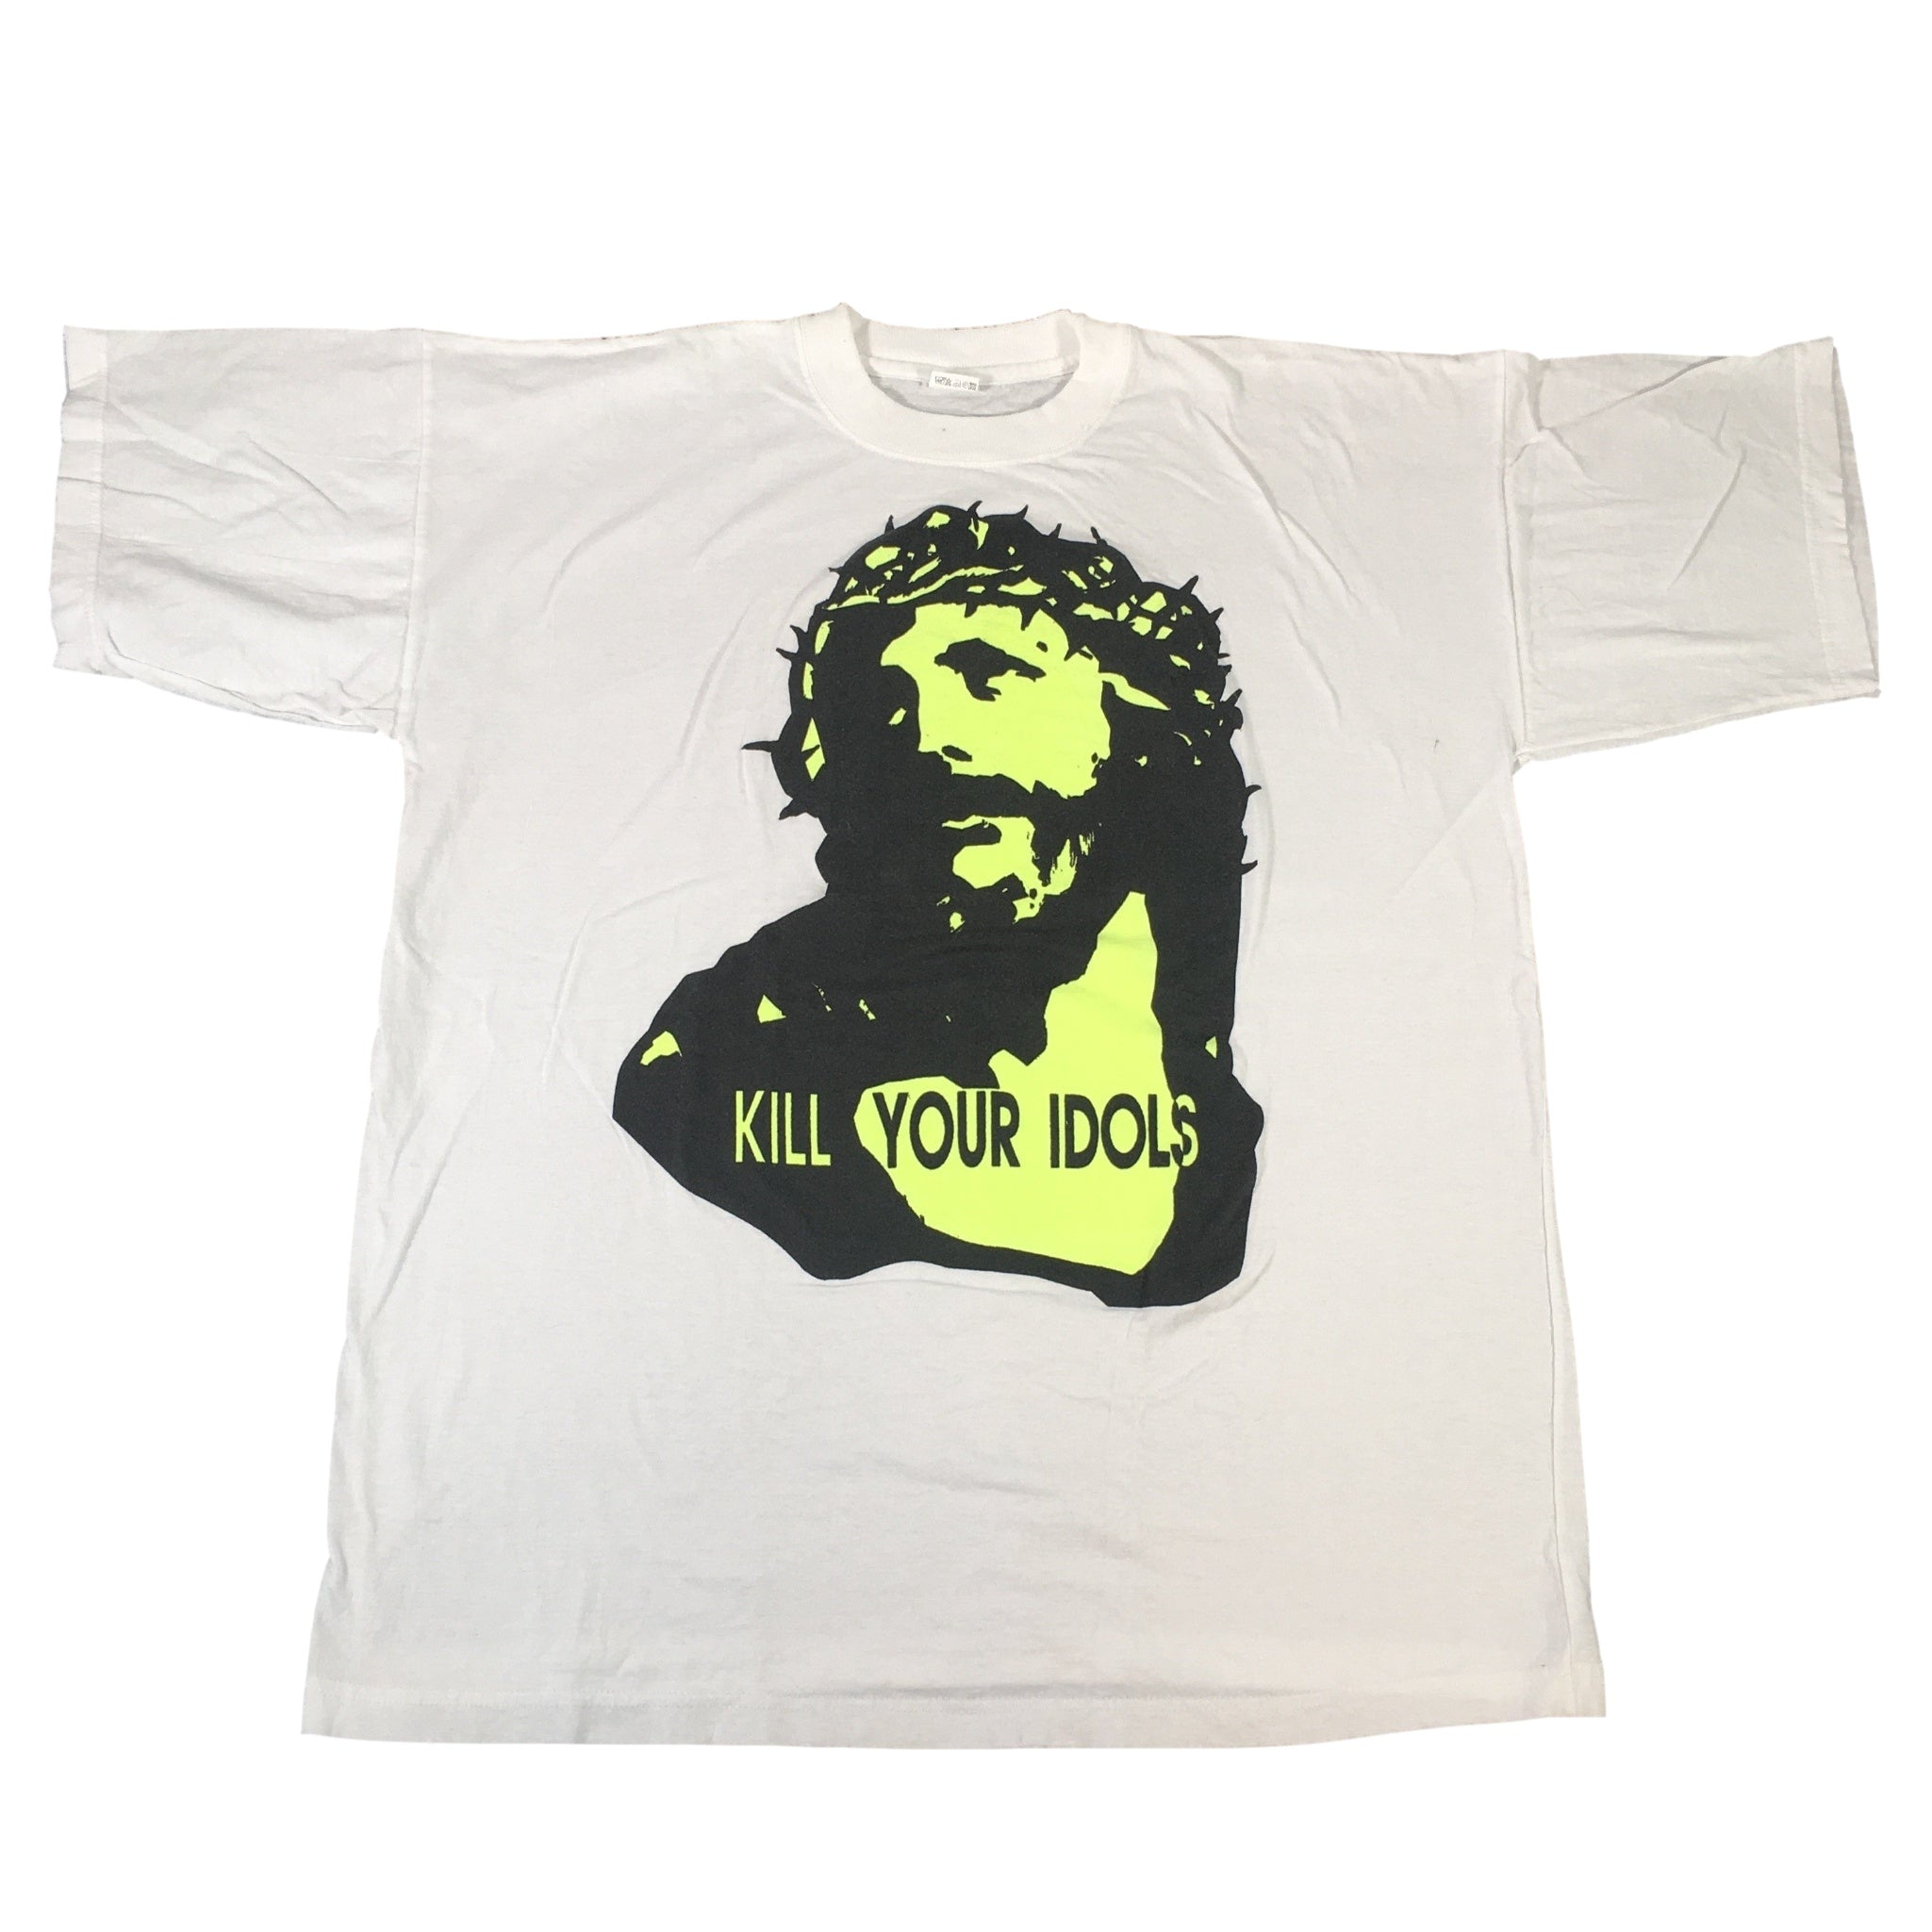 "Vintage Terror Worldwide ""Kill Your Idols"" T-Shirt"